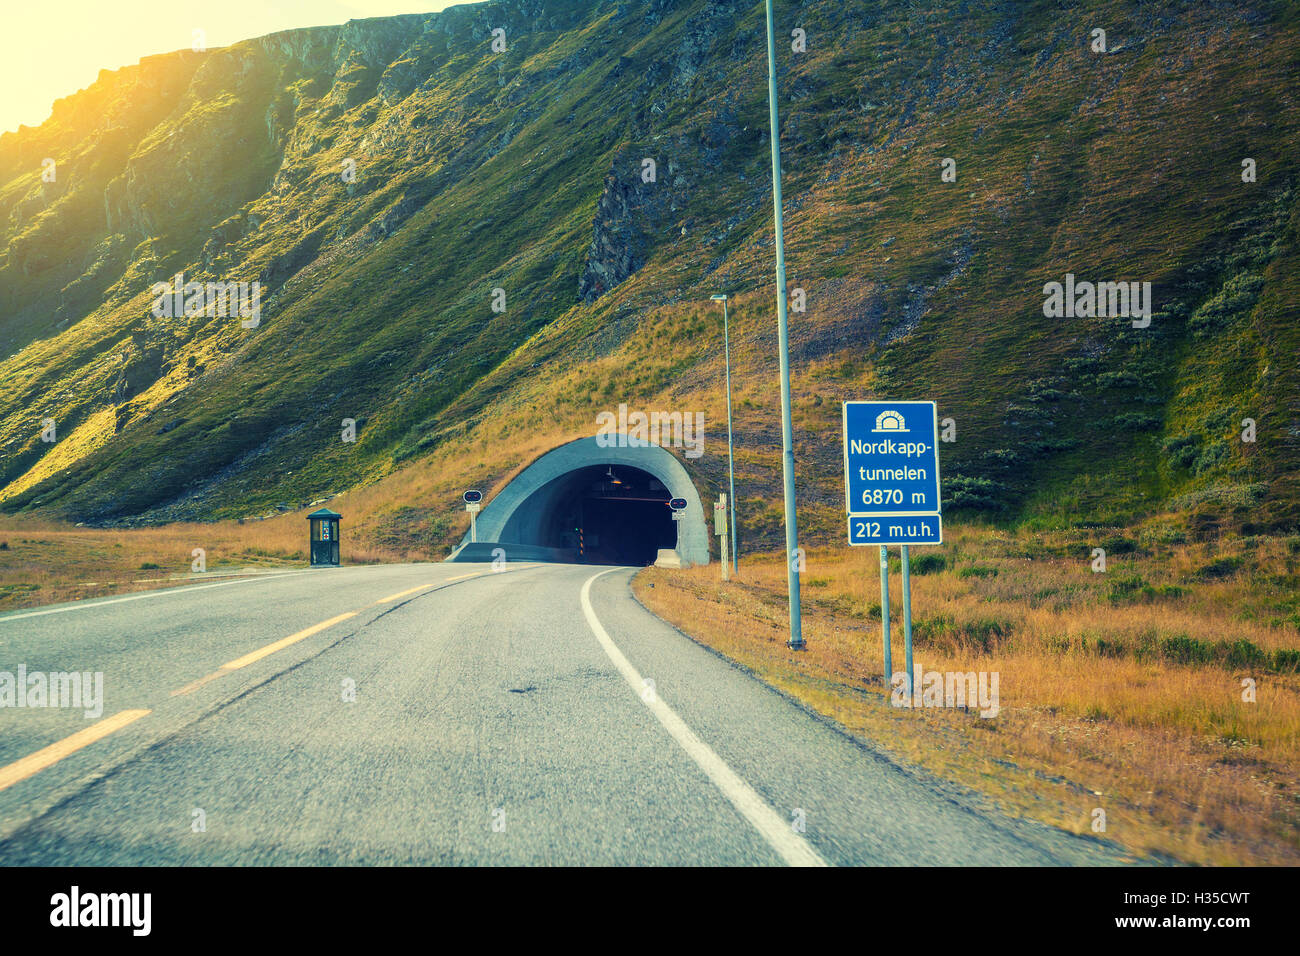 Underwater Road Tunnel Stock Photos & Underwater Road Tunnel Stock